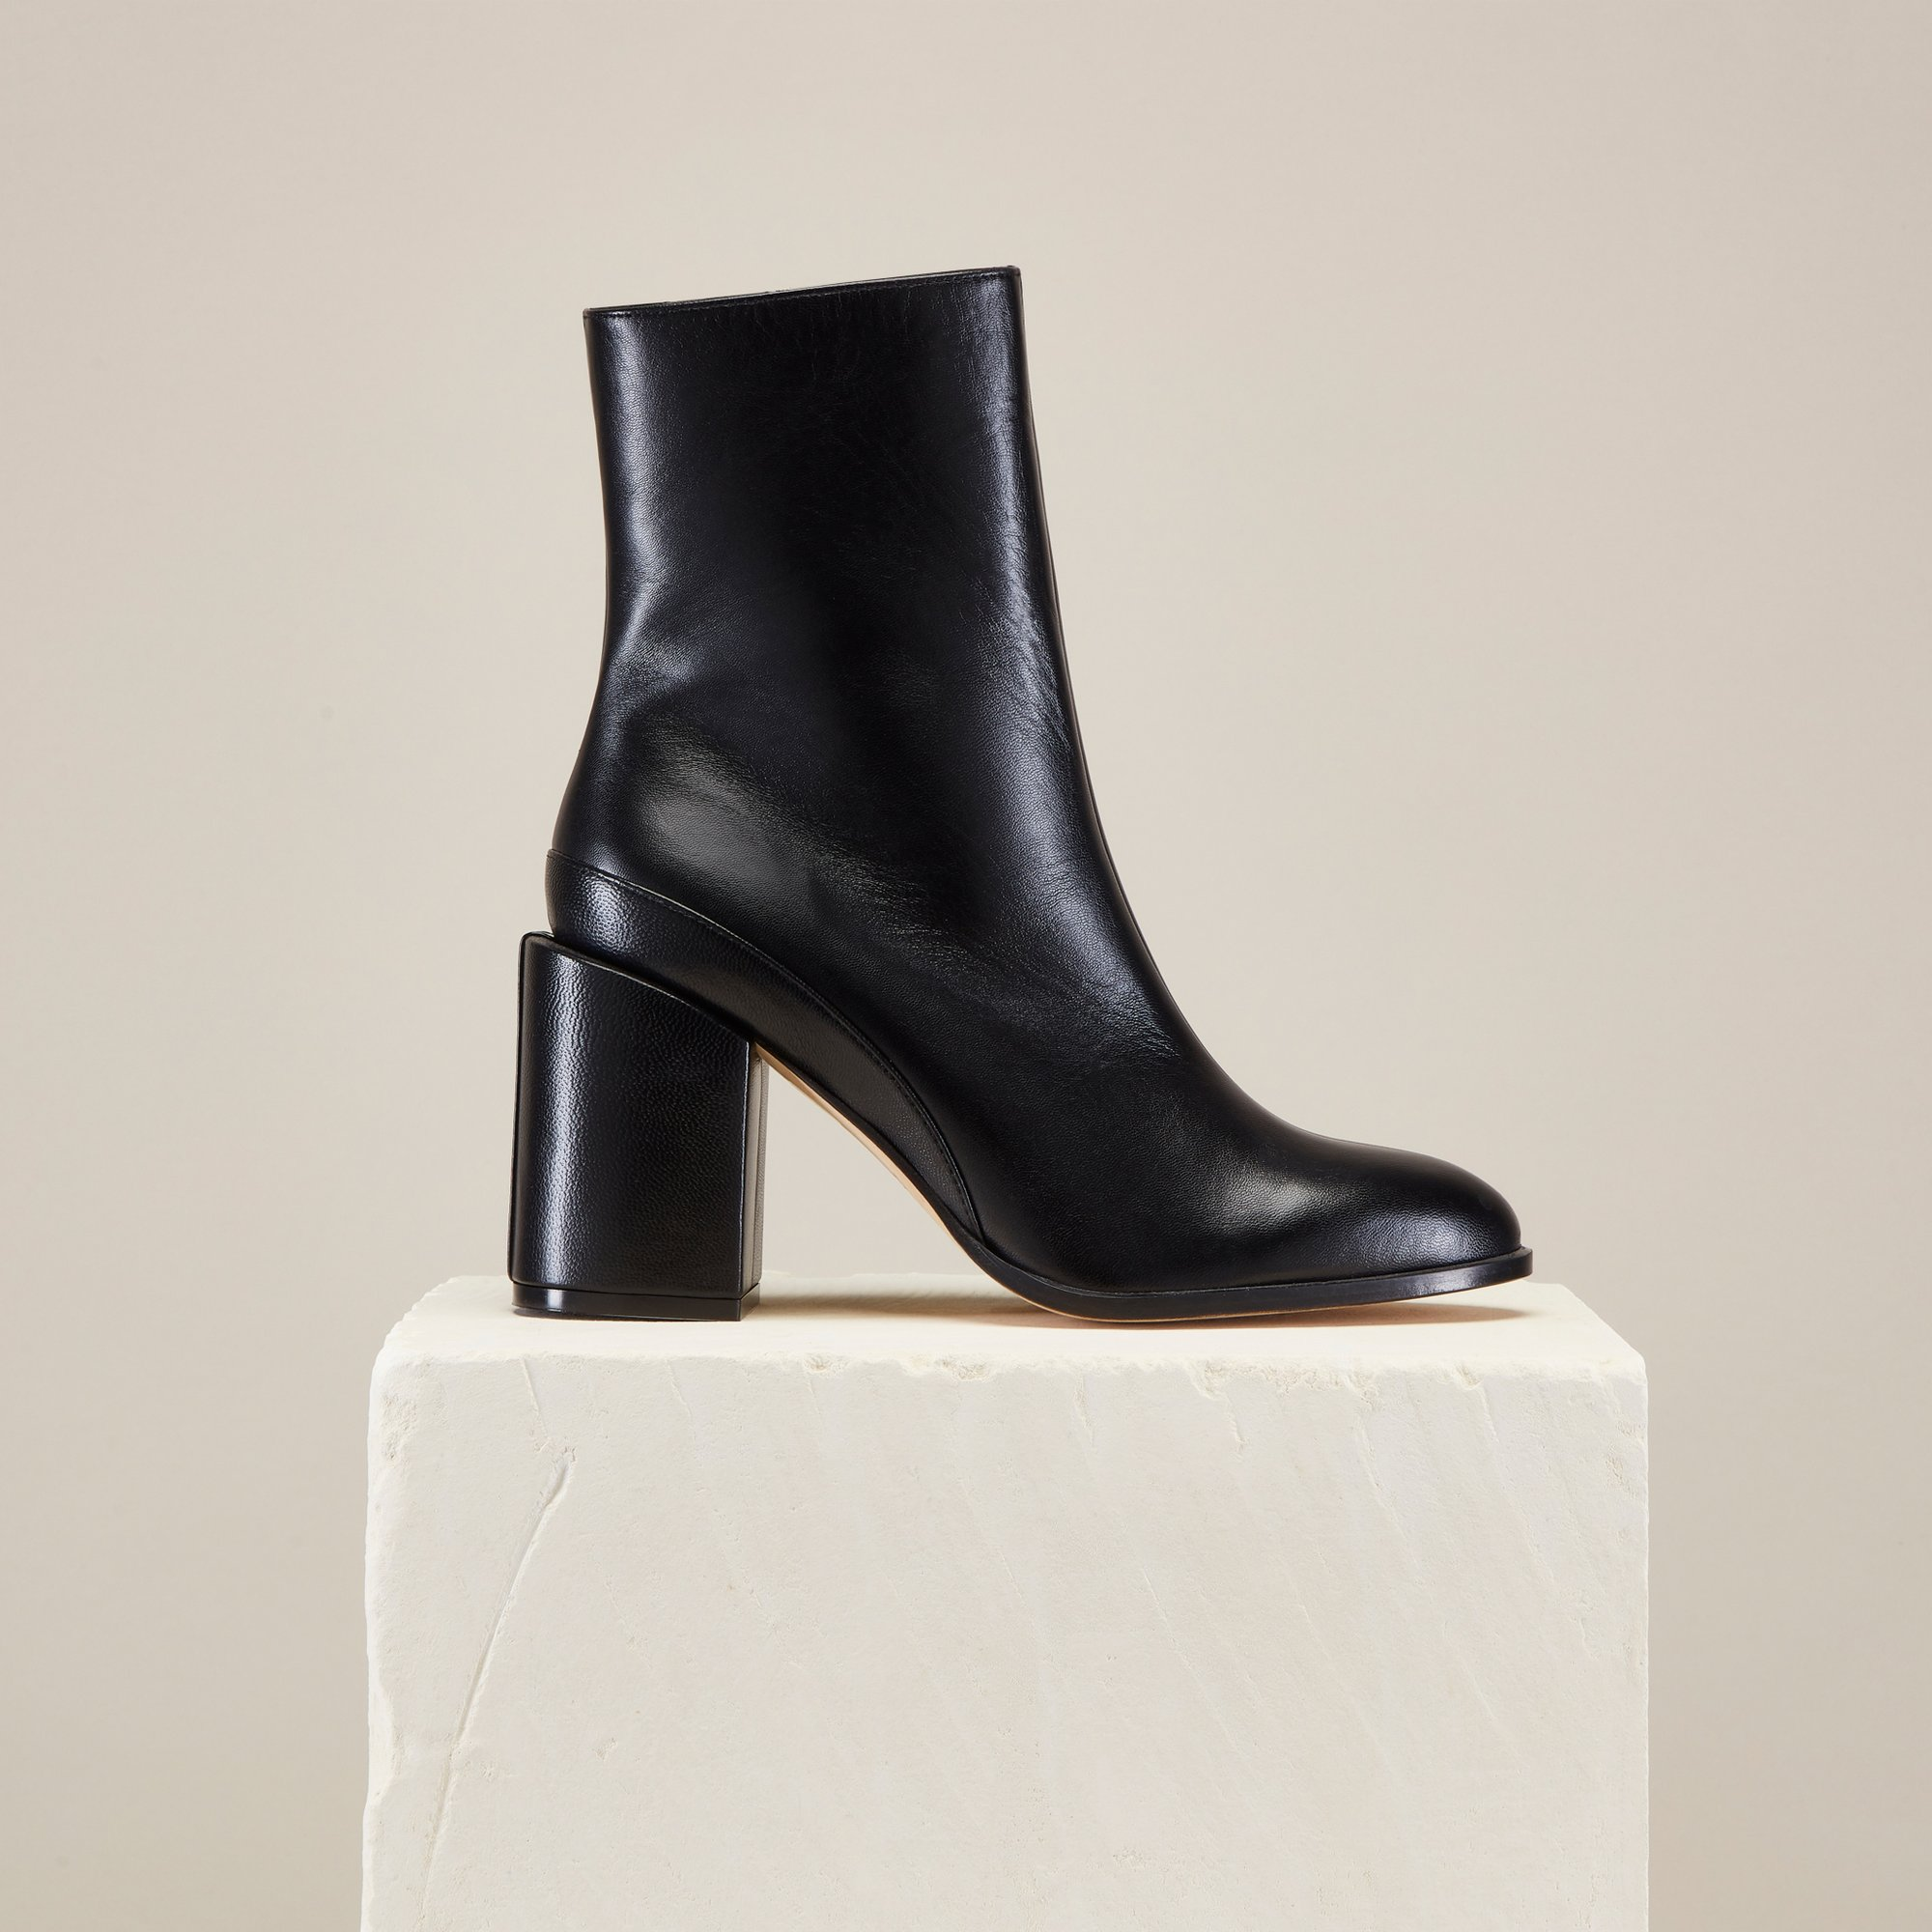 DEAR FRANCES SPIRIT BOOT - $550